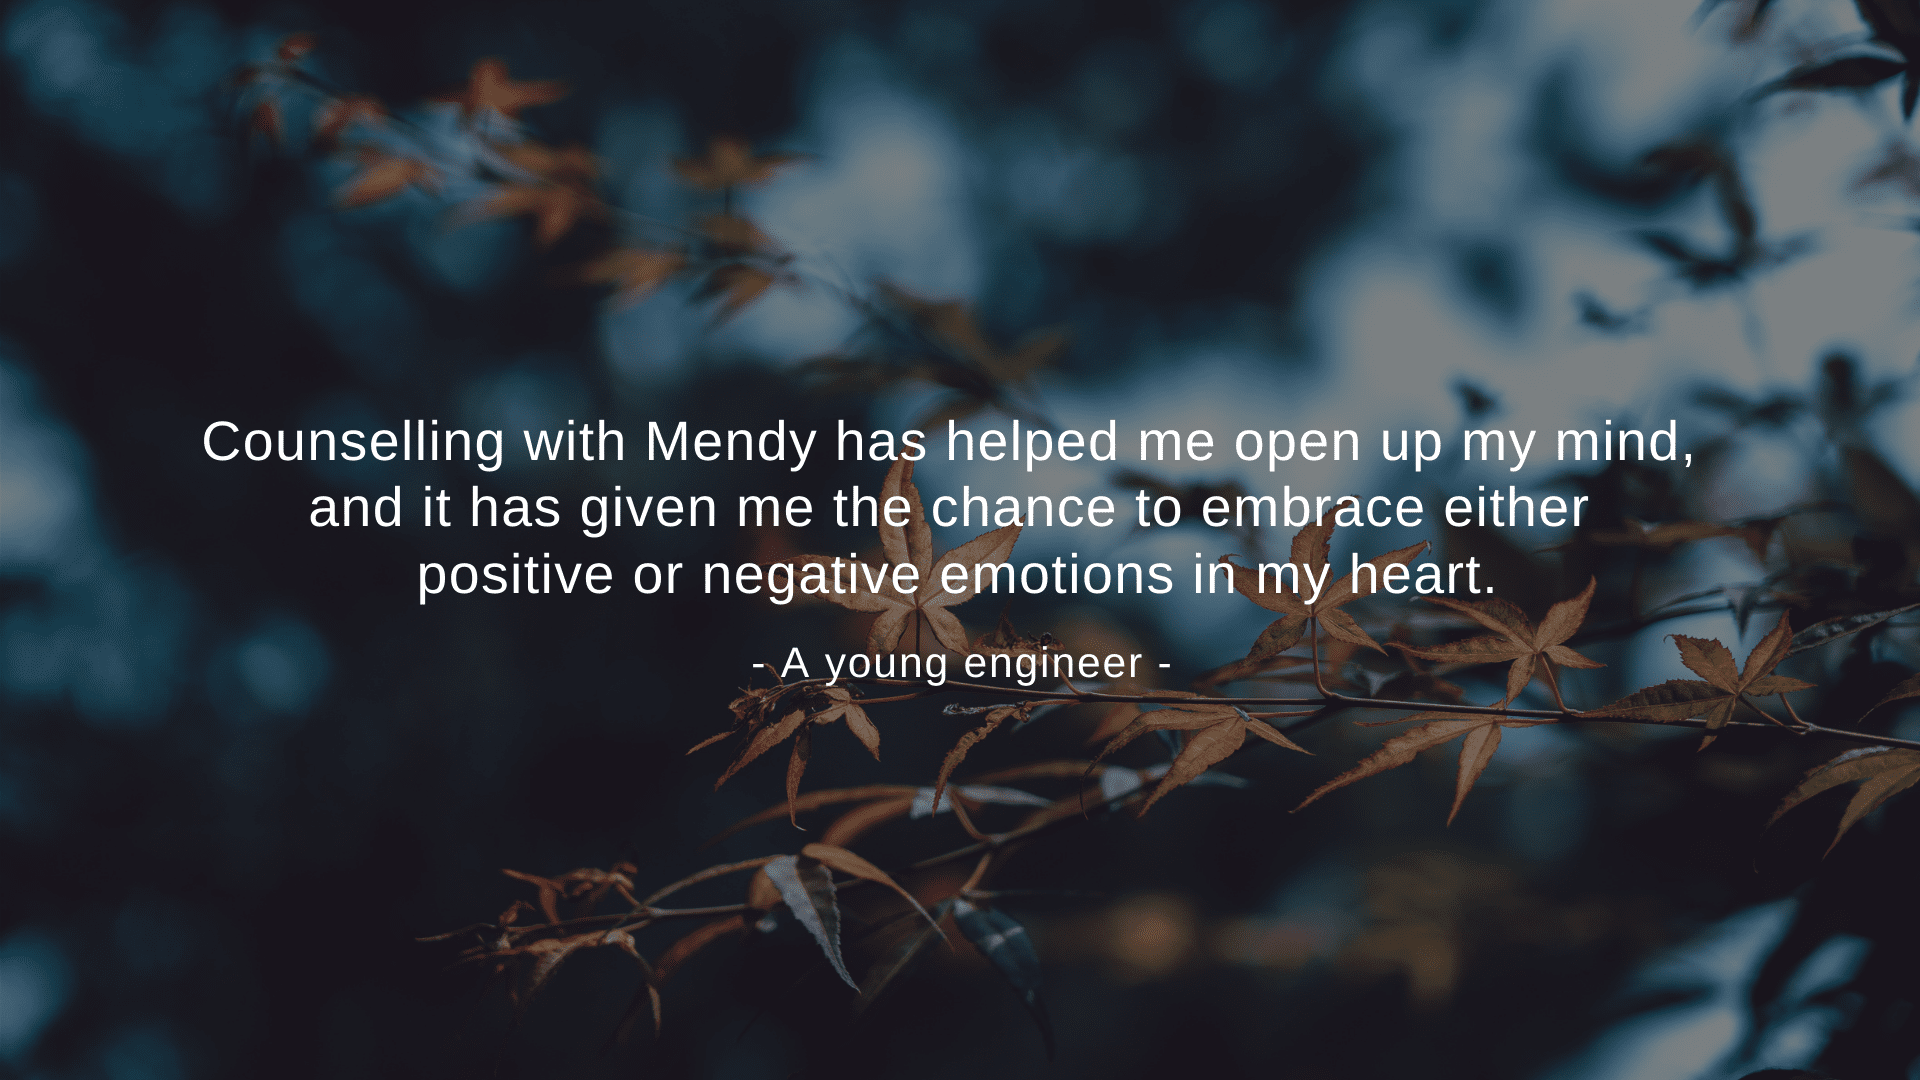 """""""Counselling with Mendy has helped me open up my mind, and it has given me the chance to embrace either positive or negative emotions in my heart."""" A young engineer"""